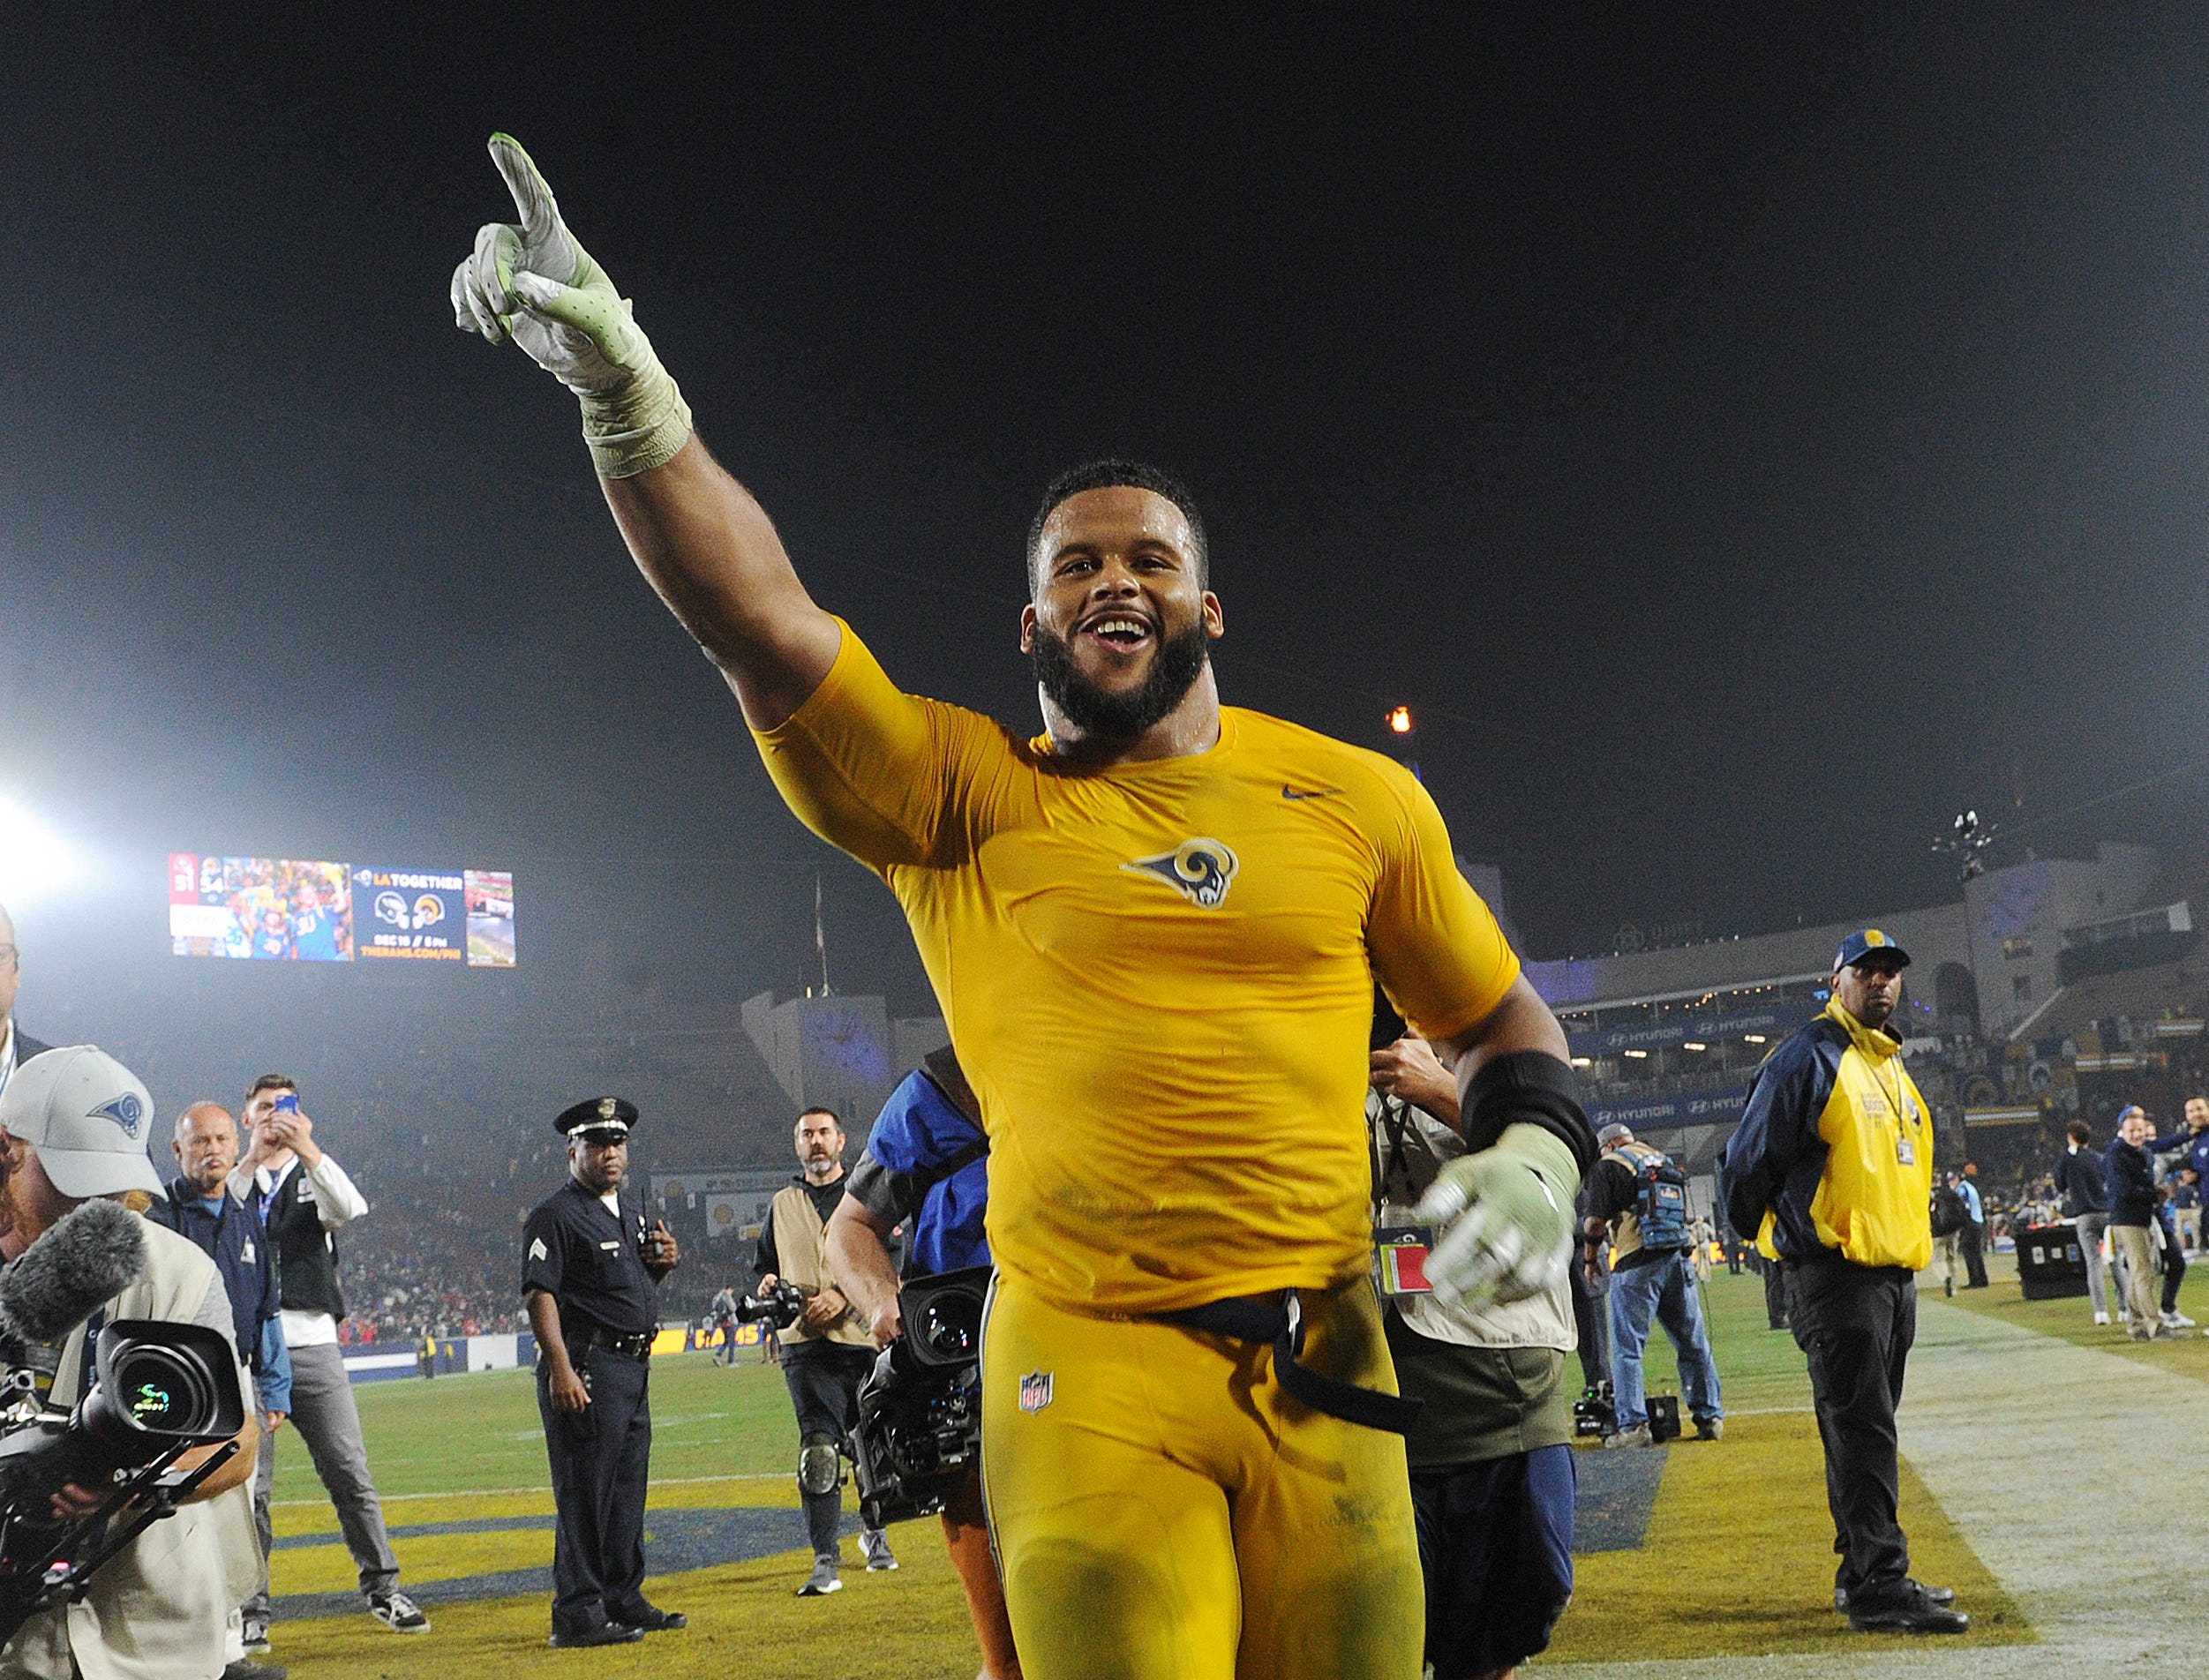 Aaron Donald leaves the field after the Rams improved to a league best 10-1 record.